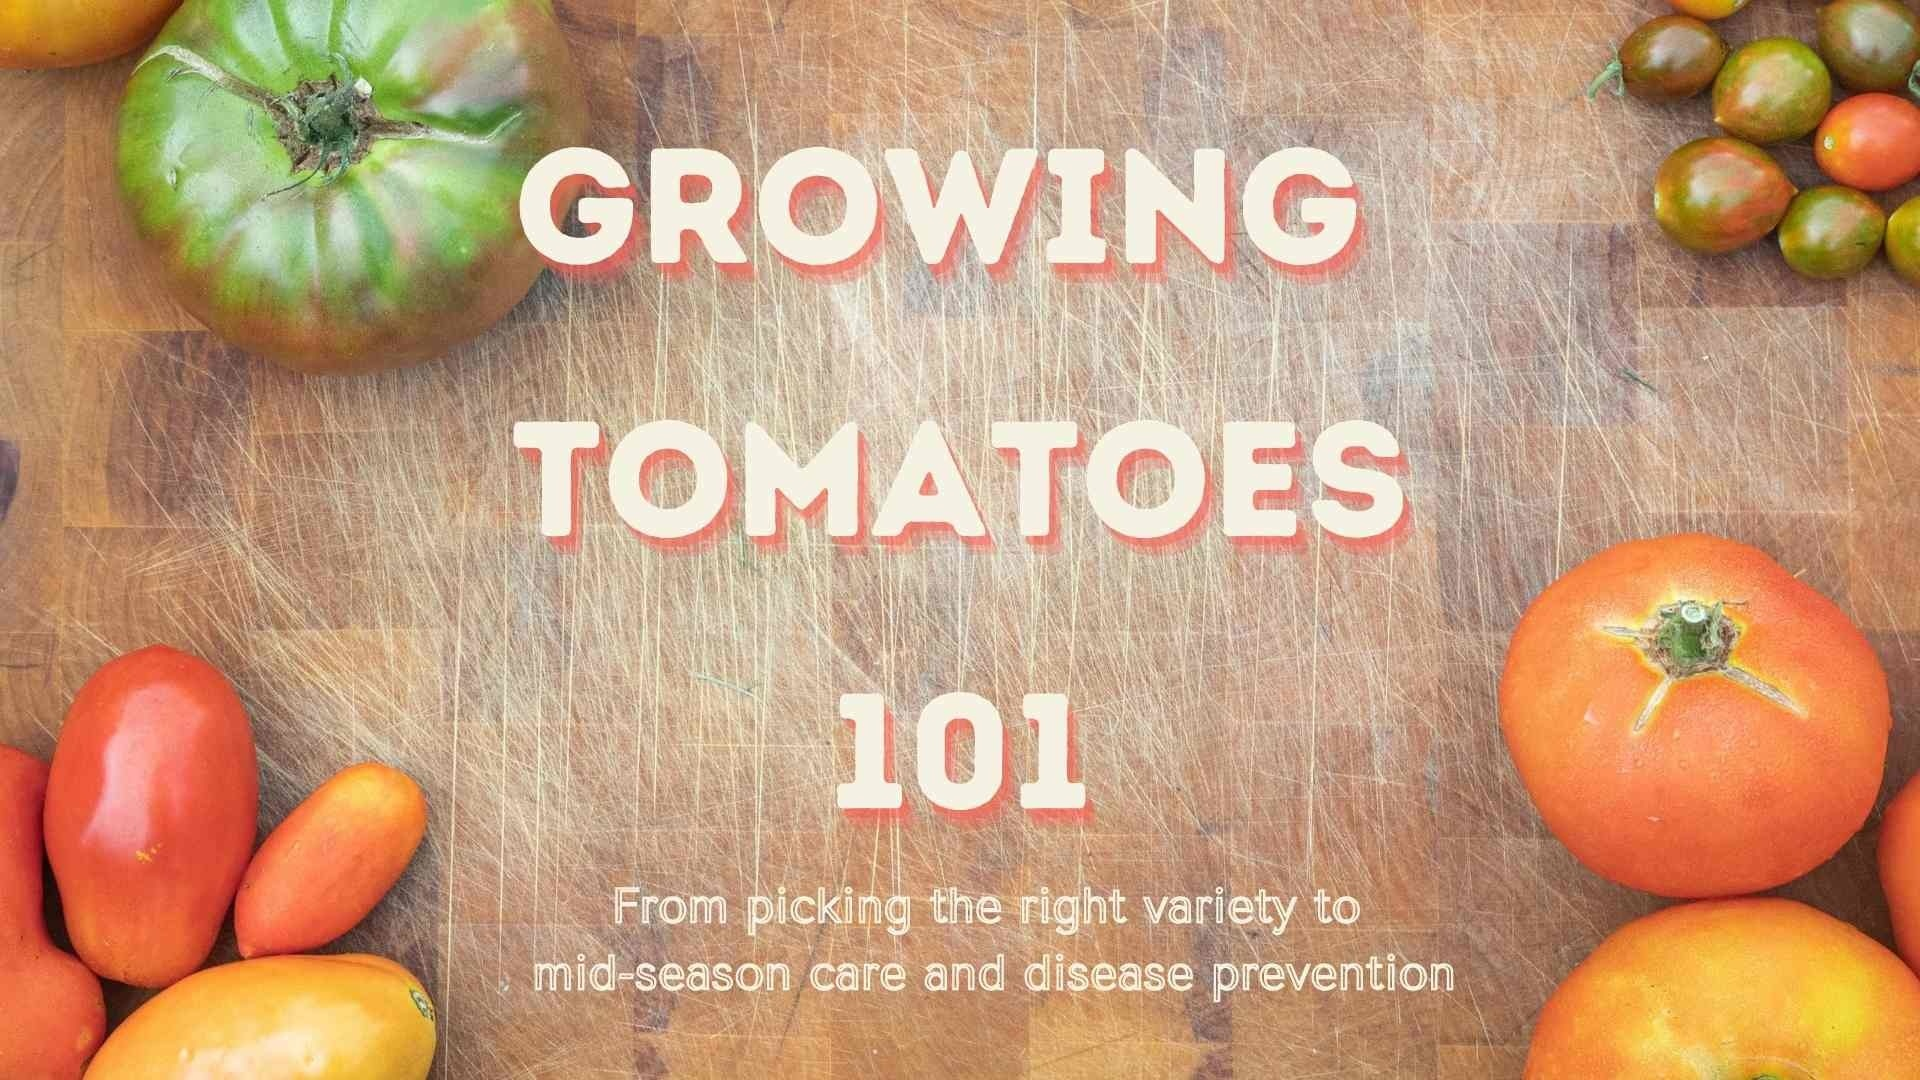 Growing Tomatoes 101: From Picking the Right Variety to Mid-Season Care